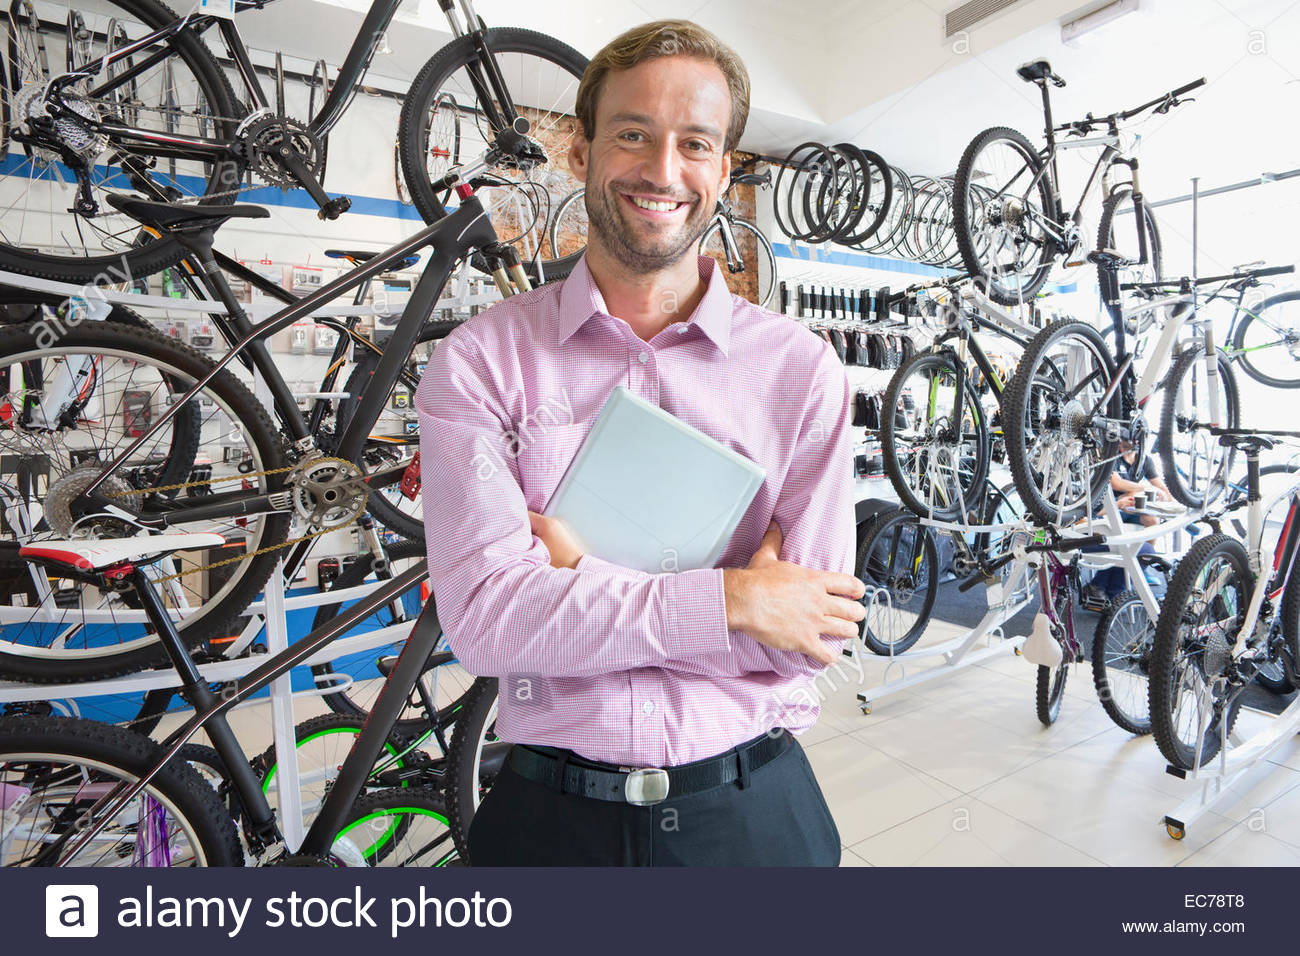 Store owner in bicycle shop smiling at camera - Stock Image